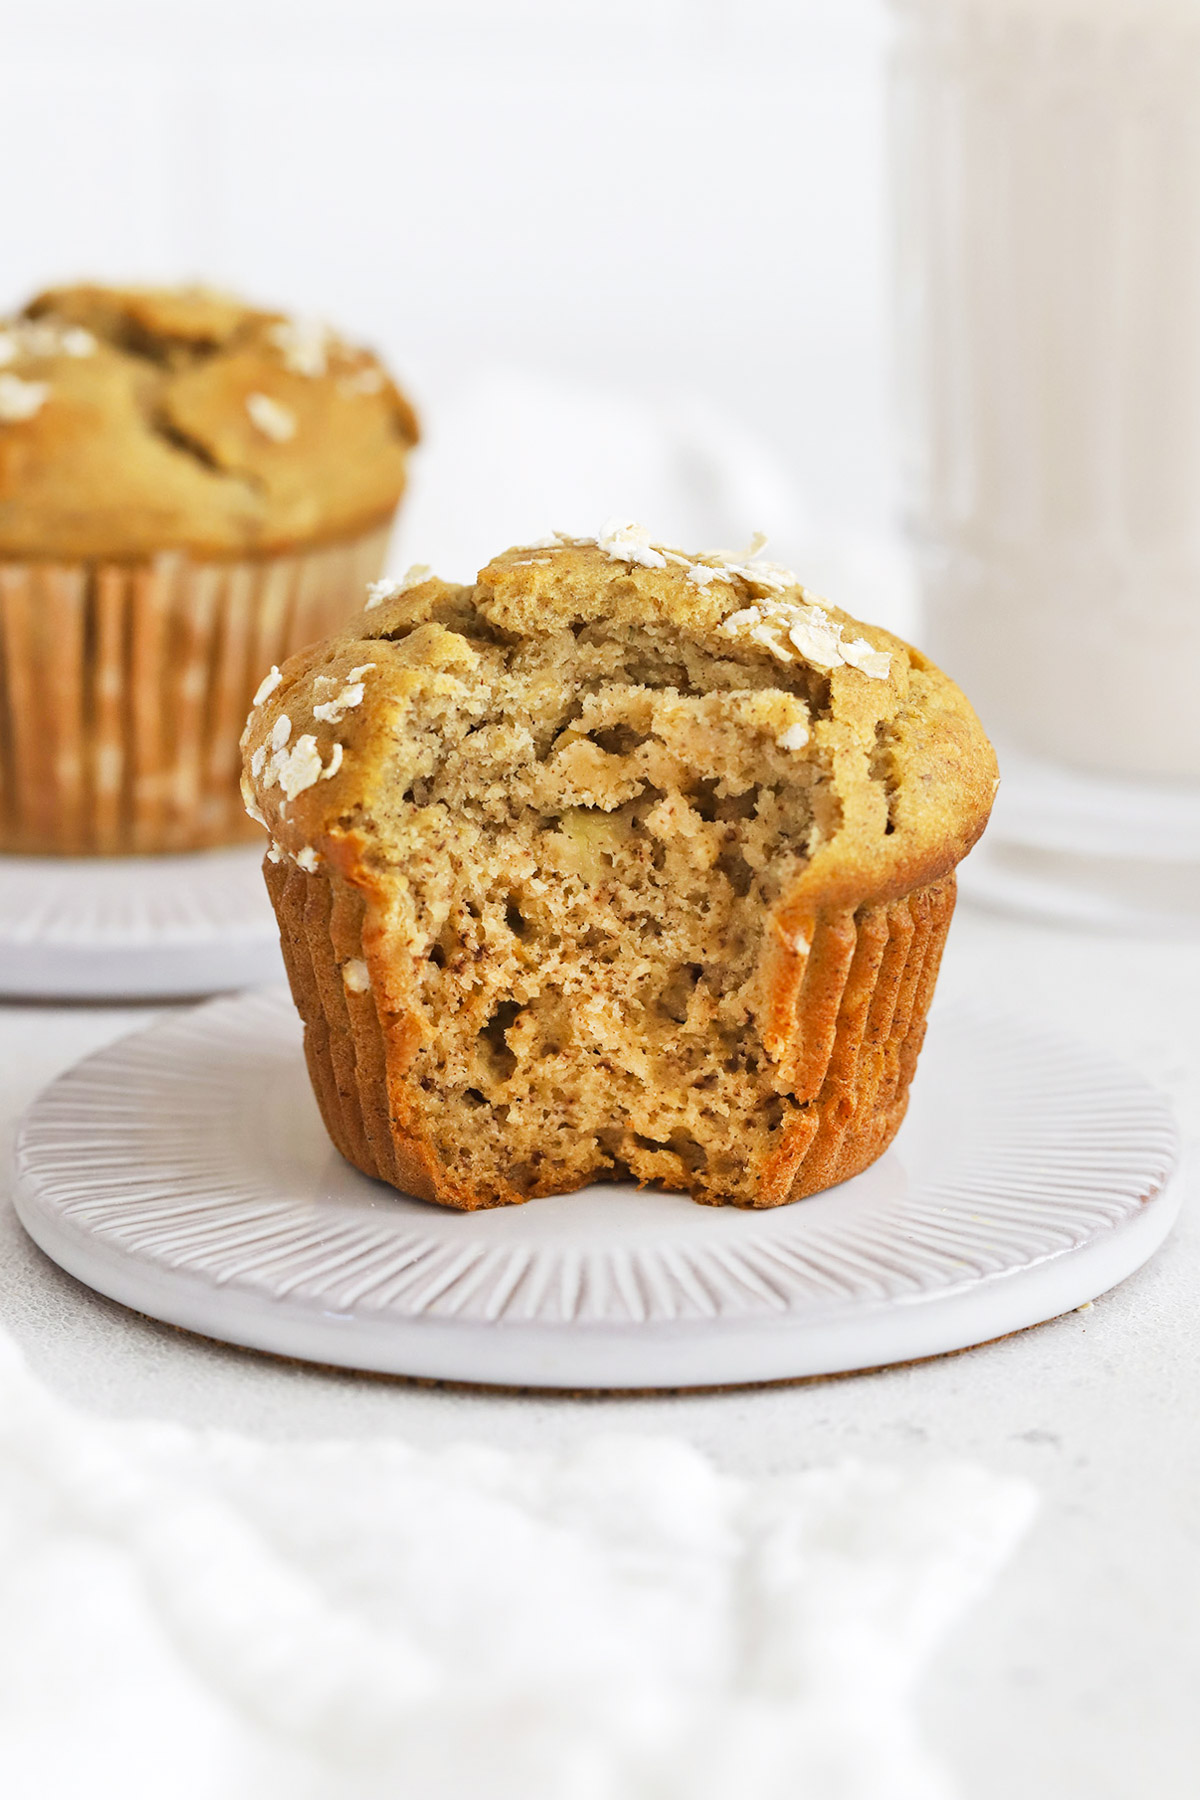 Front view of gluten-free banana oatmeal muffins. The one in the foreground has a bite taken out of it, showing a fluffy interior